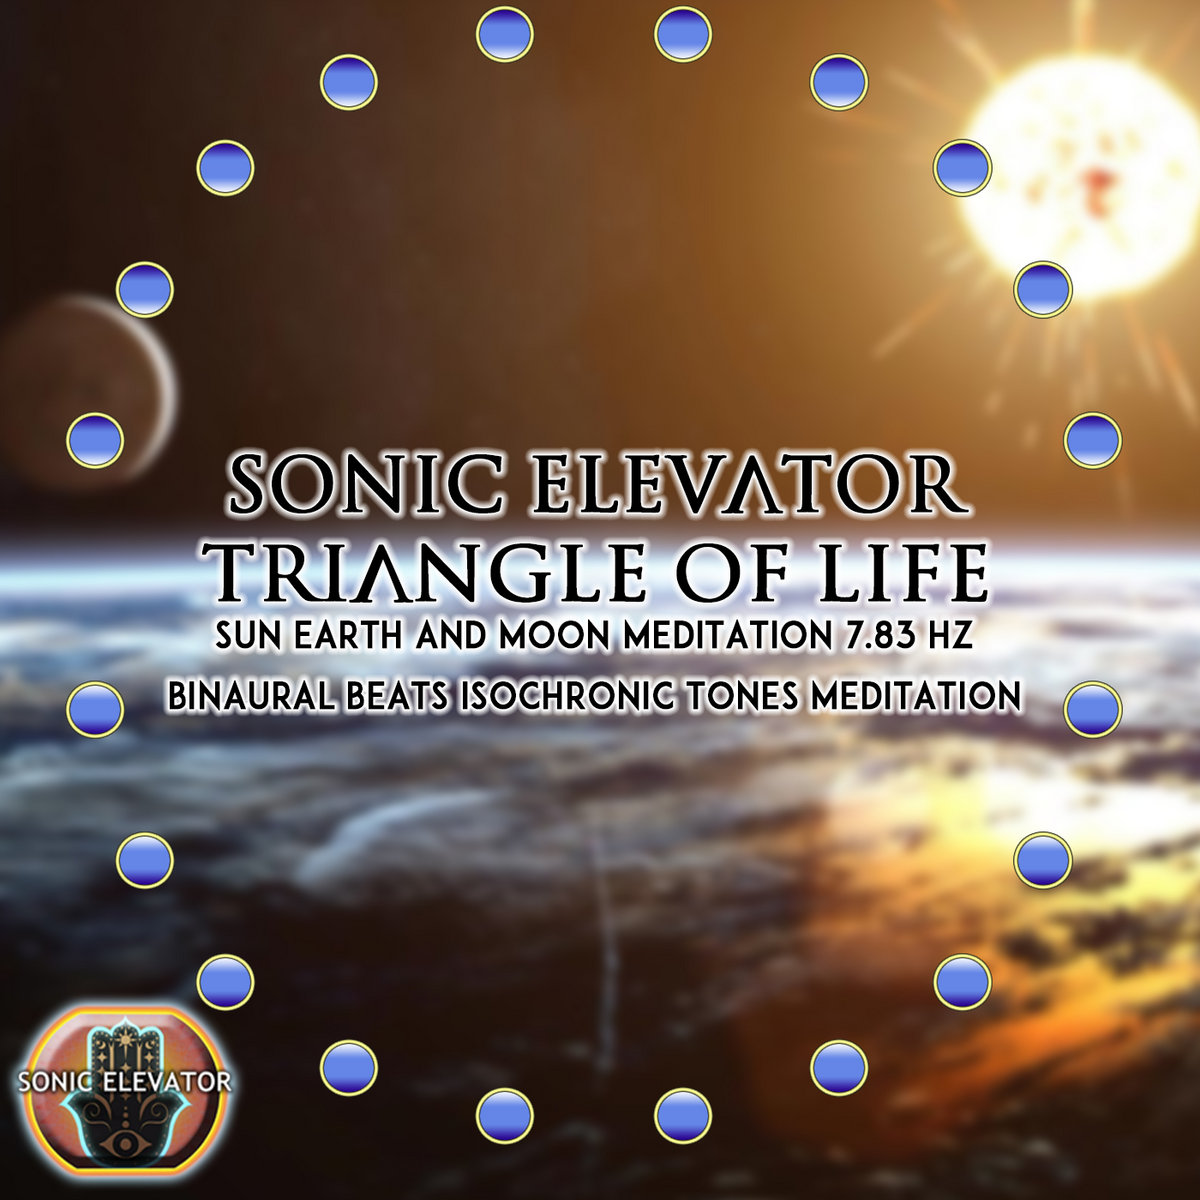 Triangle of Life » SUN Earth And MOON Meditation |7 83 HZ